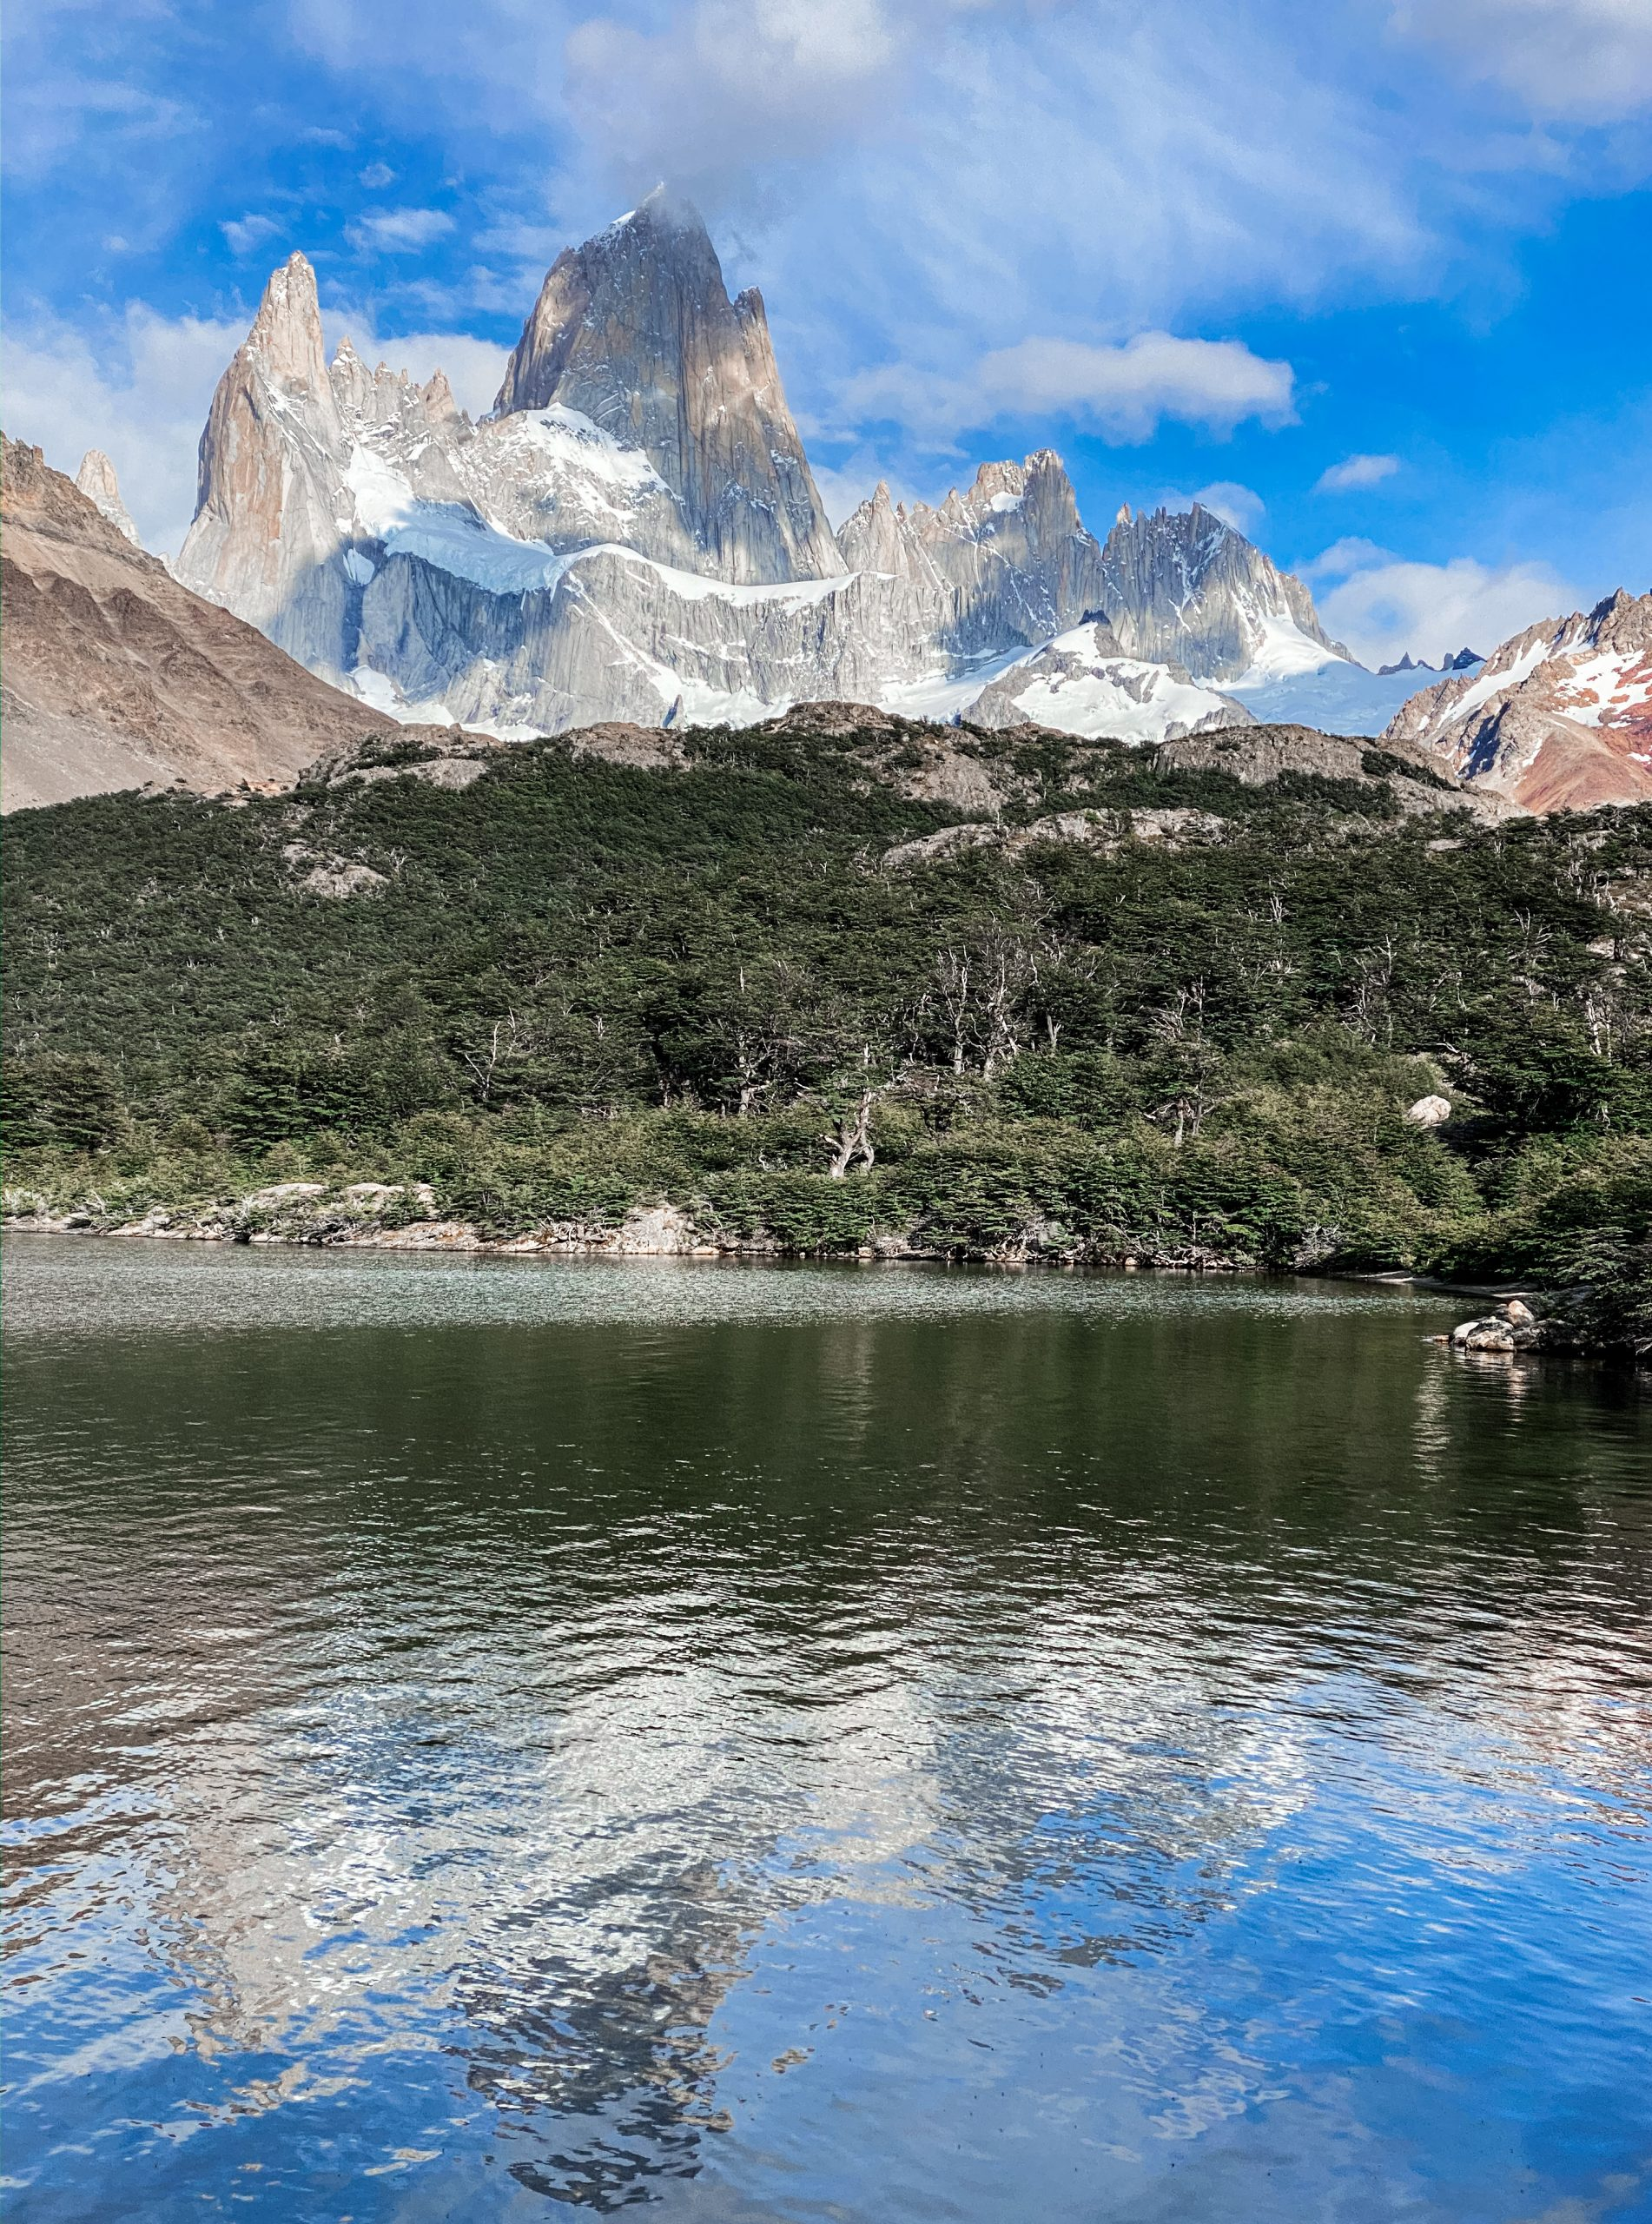 View of Fitz Roy from Laguna Capri